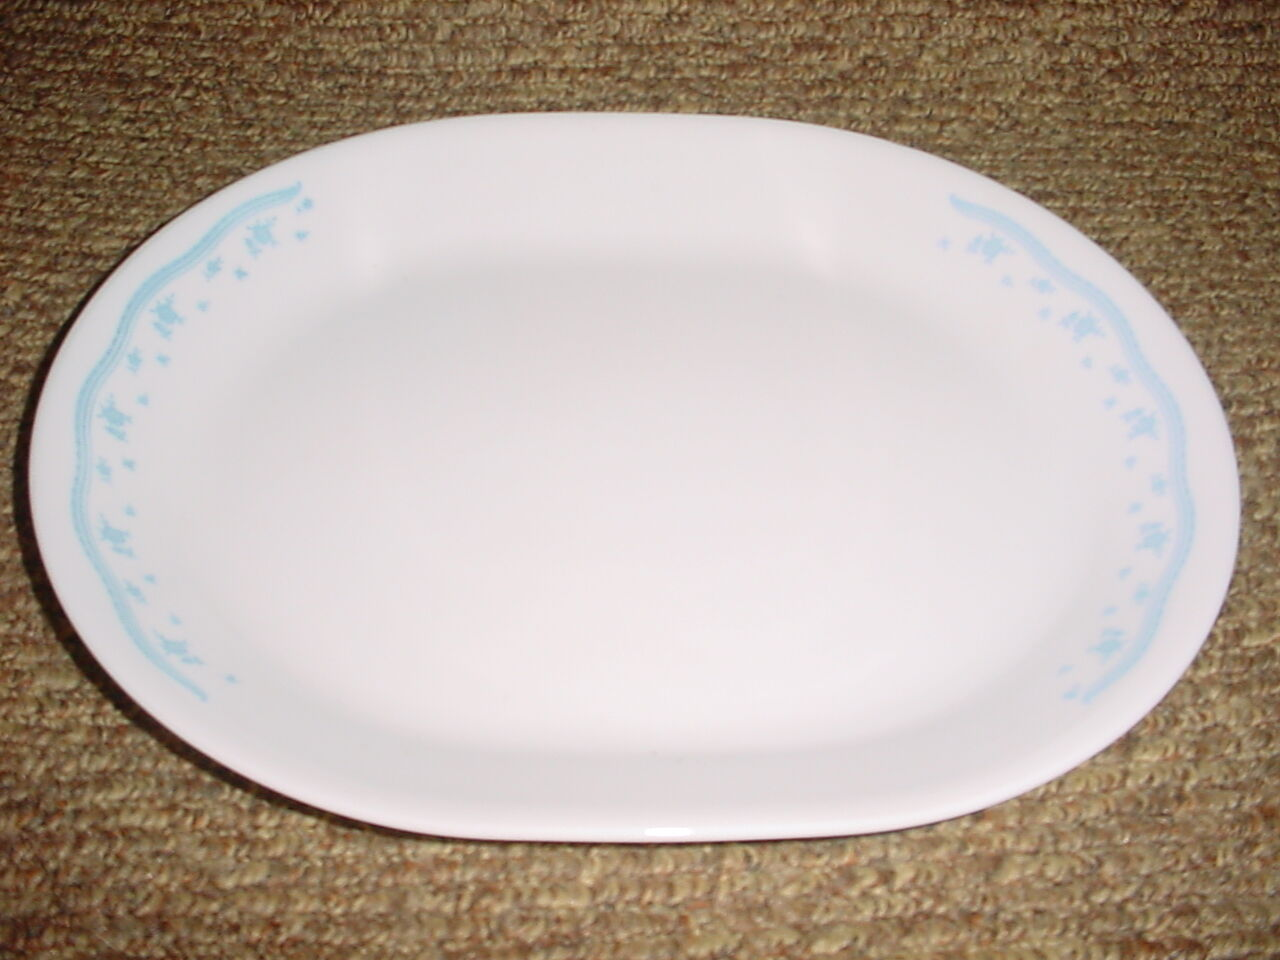 Primary image for CORELLE MORNING BLUE 12.25 INCH OVAL SERVING PLATTER GENTLY USED FREE USA SHIP